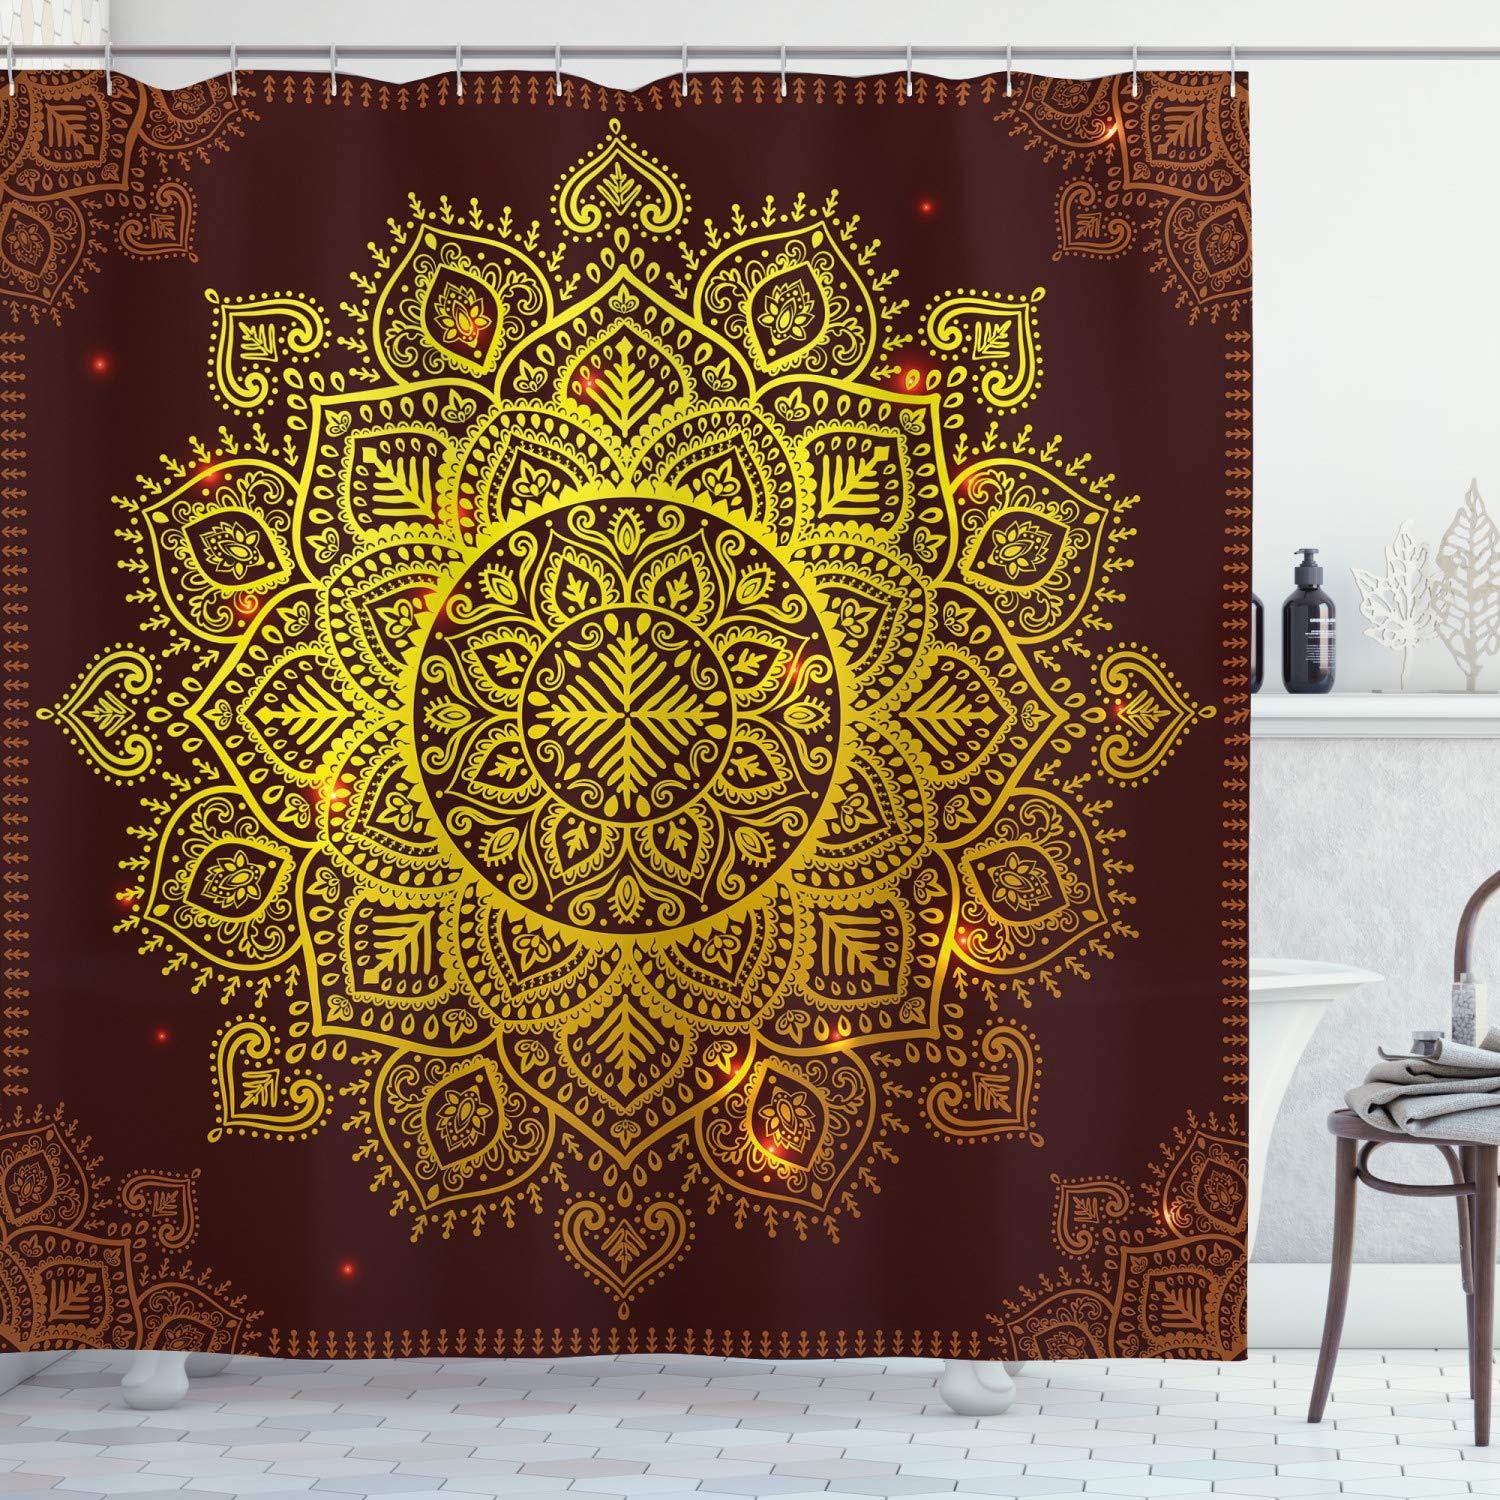 """Ambesonne Mandala Shower Curtain, Ornamental Snowflake Floral Traditional Oriental Graphic Artwork, Cloth Fabric Bathroom Decor Set with Hooks, 75"""" Long, Yellow Brown"""